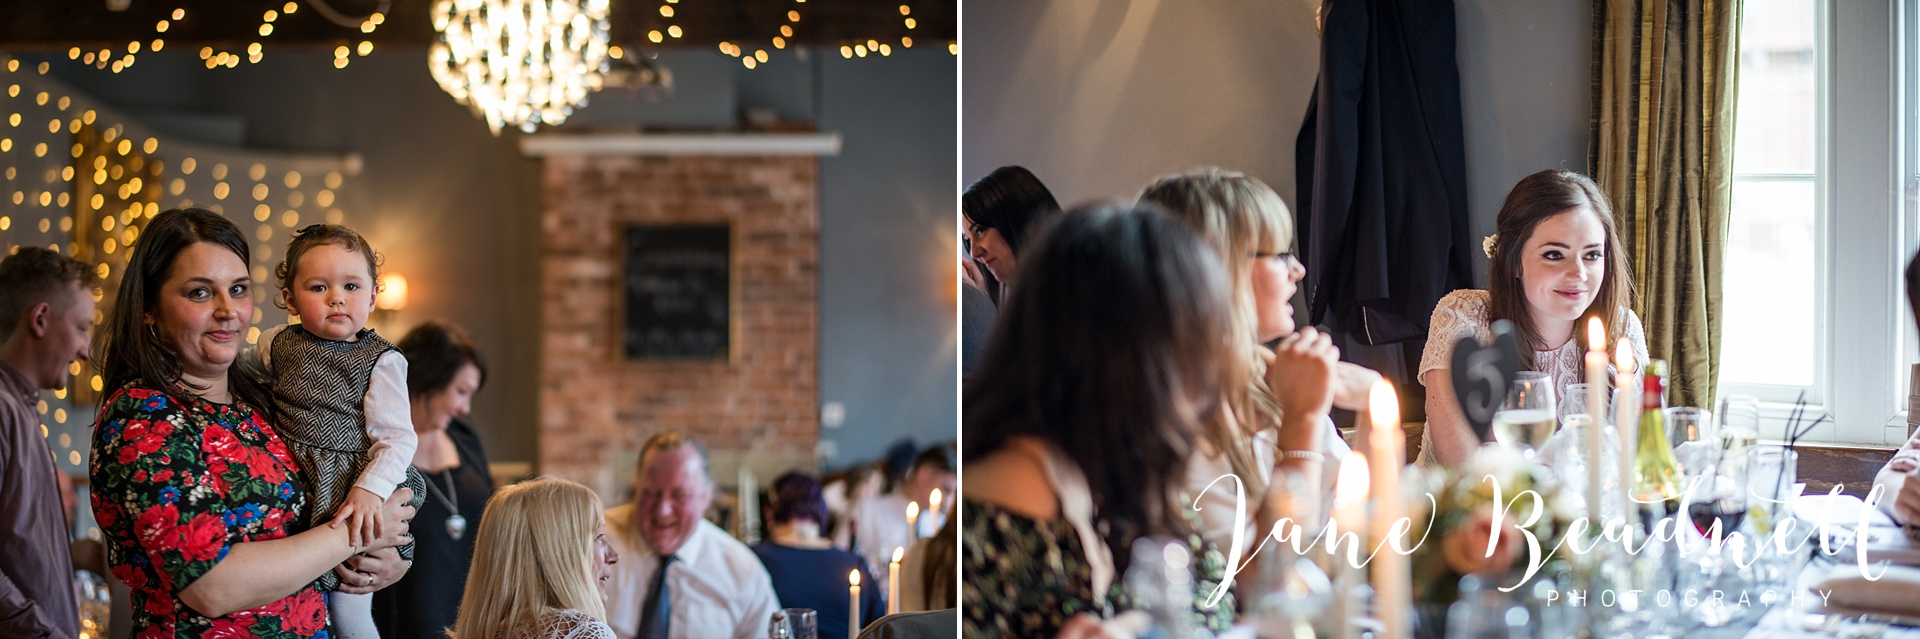 Wedding photography Cross Keys Leeds Wedding Jane Beadnell Photography_0139